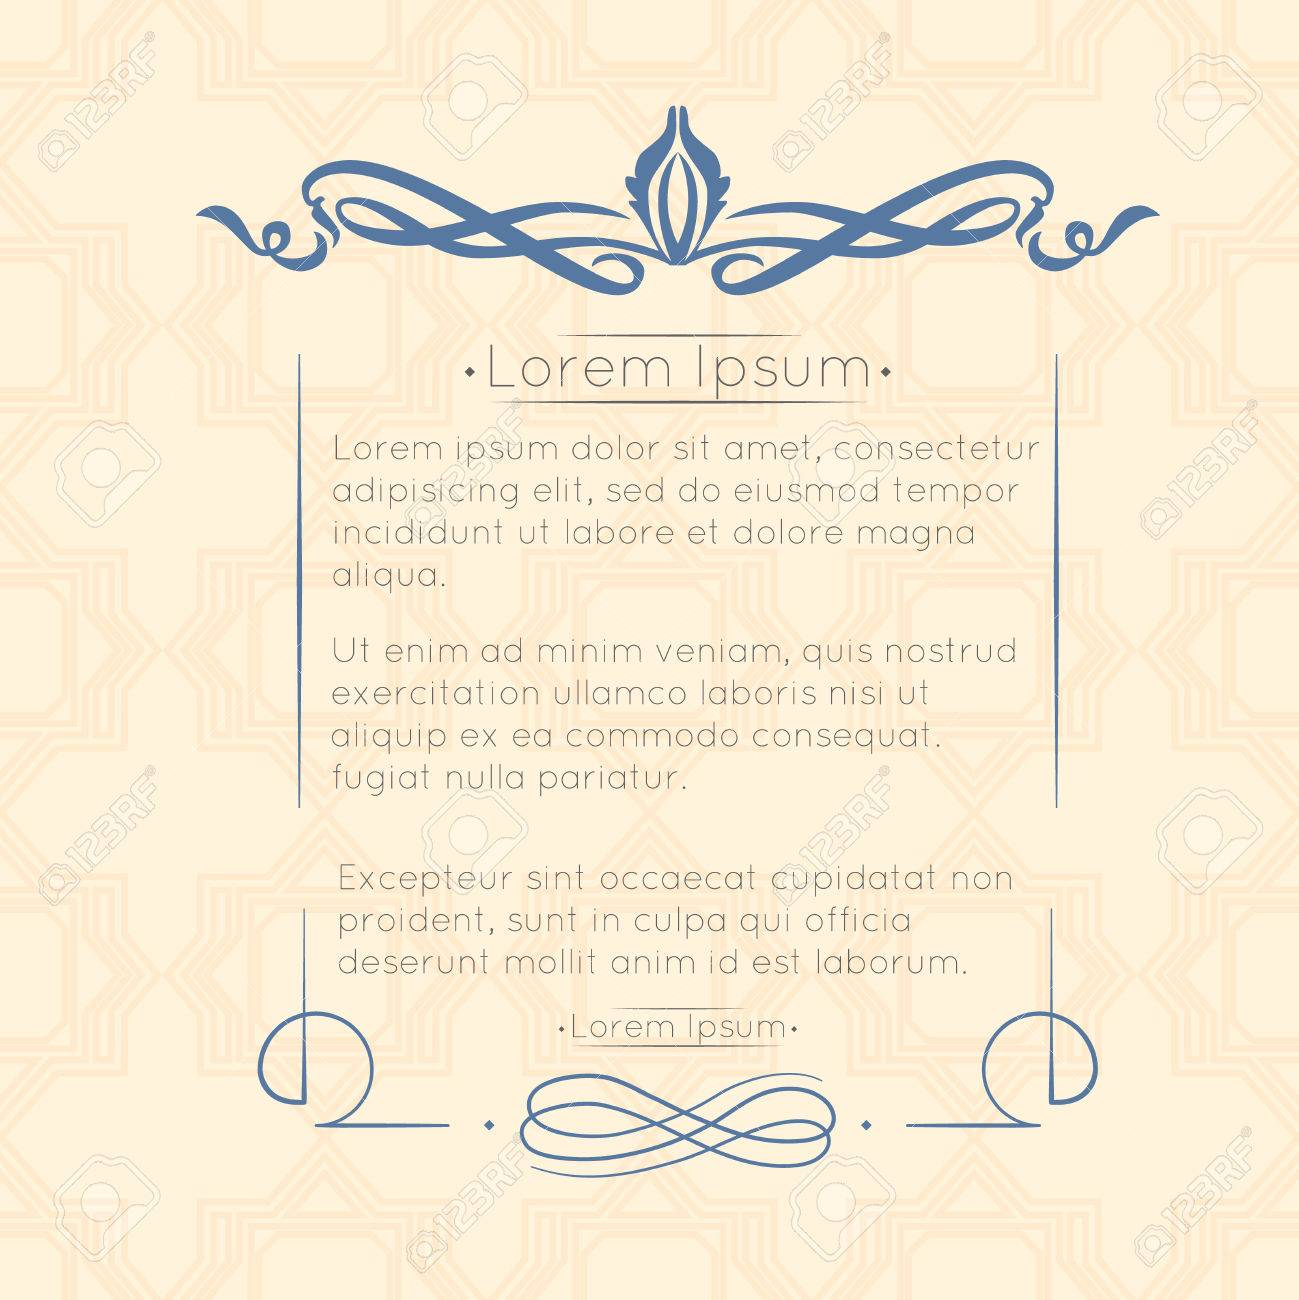 Border designs for greeting cards template design for invitation border designs for greeting cards template design for invitation labels poem writing m4hsunfo